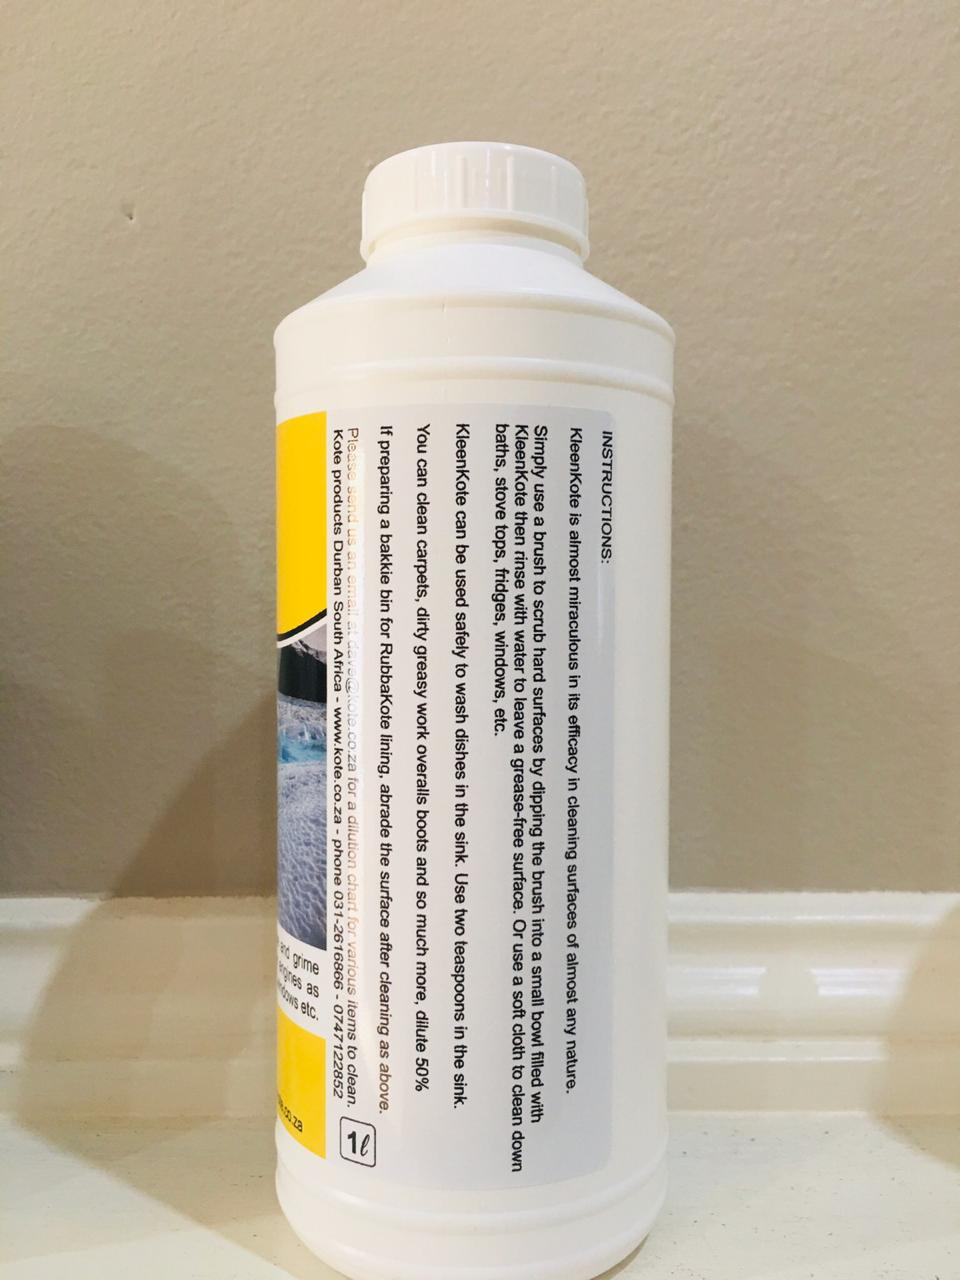 KleenKote - The only cleaning liquid that removes 100% of the dirt and algue